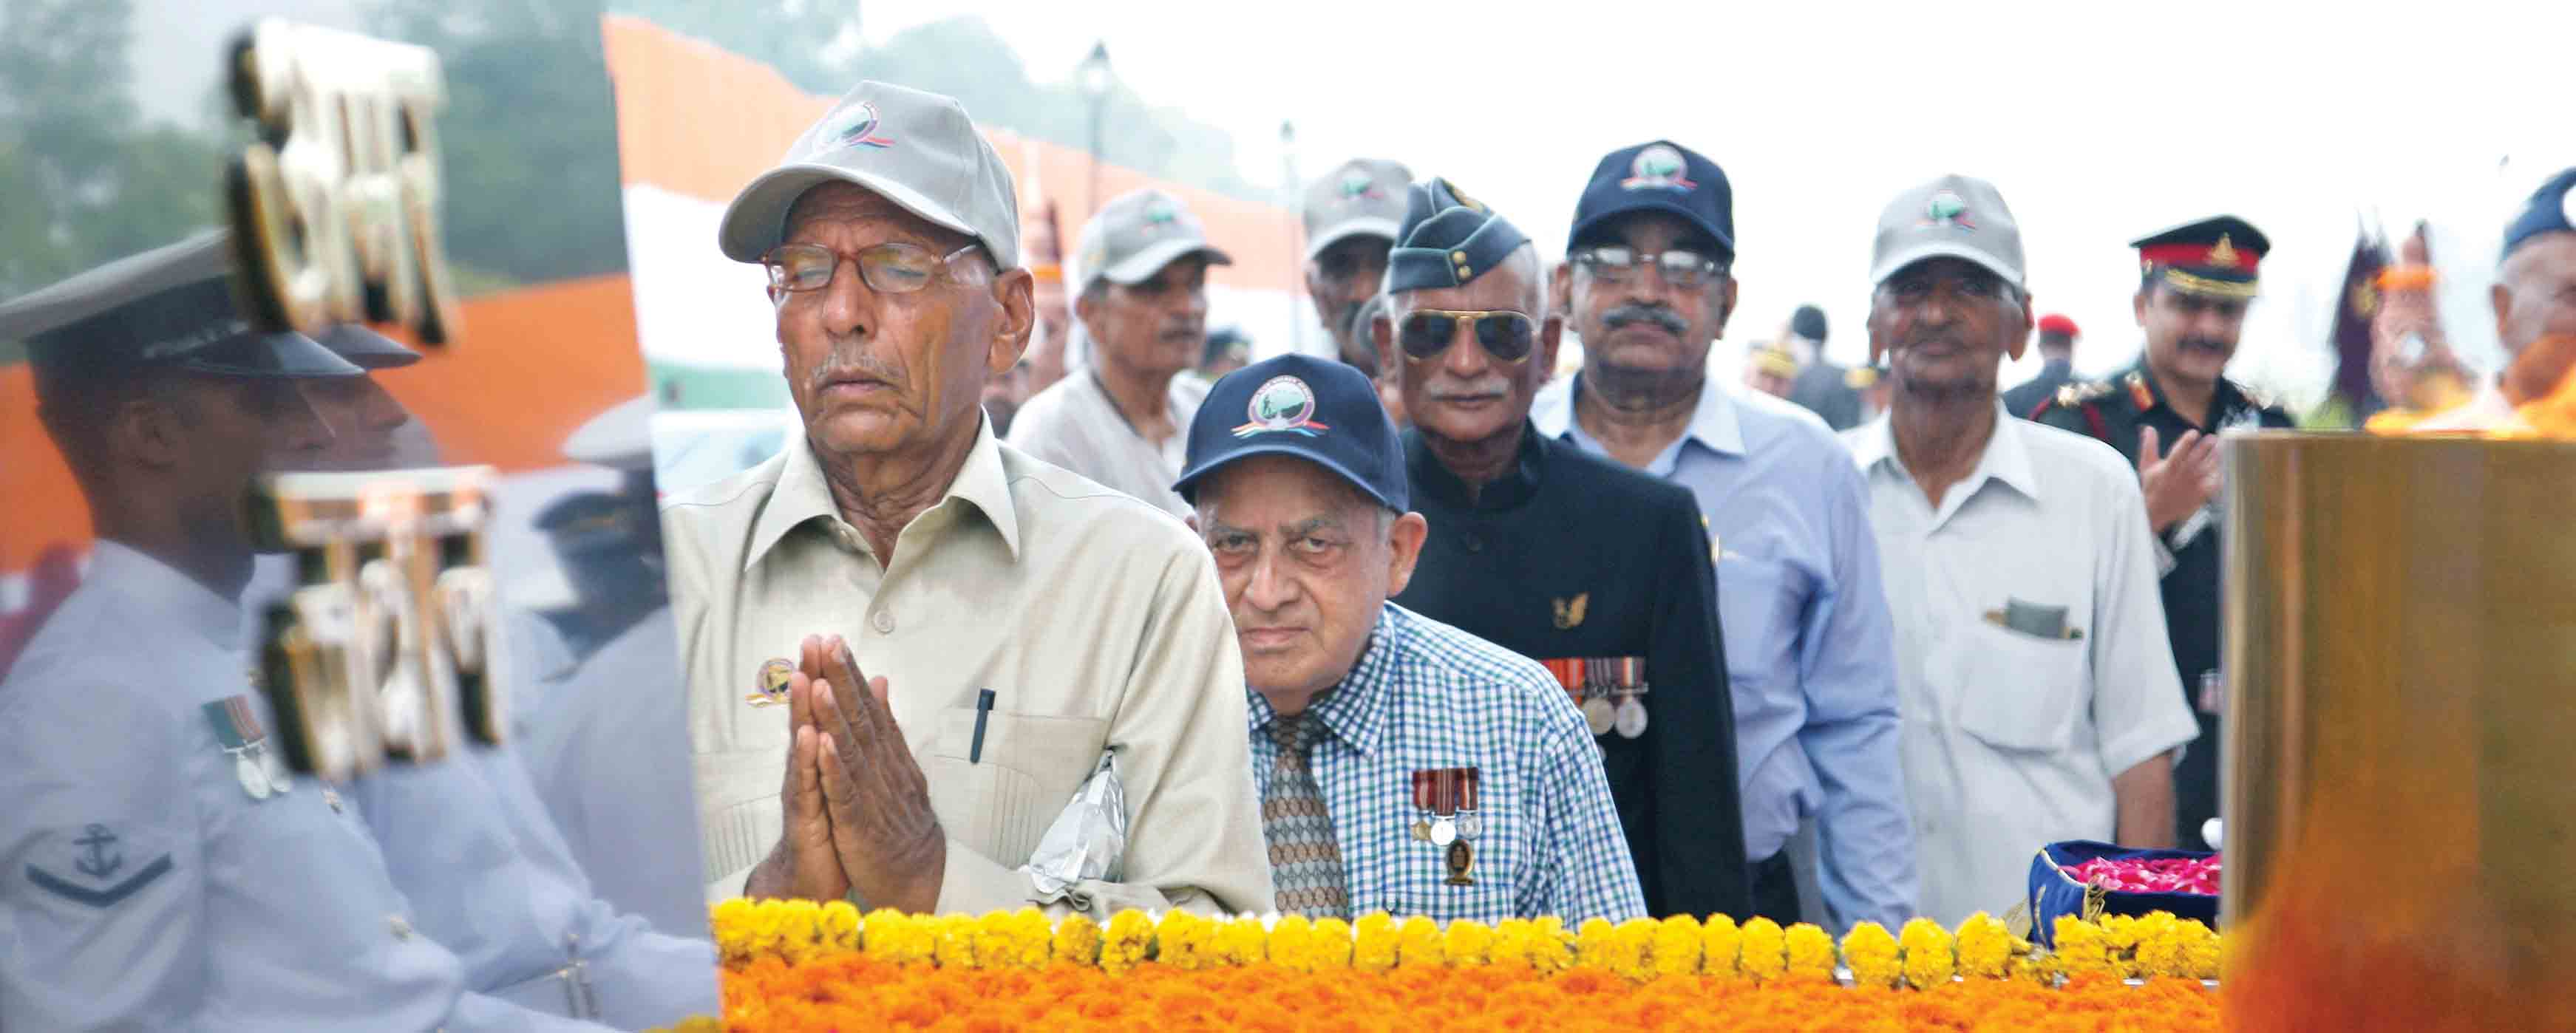 ar Veterans paying homage to martyrs at Amar Jawan Jyoti, India Gate on the occasion of 50th anniversary of Indo-Pak War 1965 on Friday, August 28, 2015.